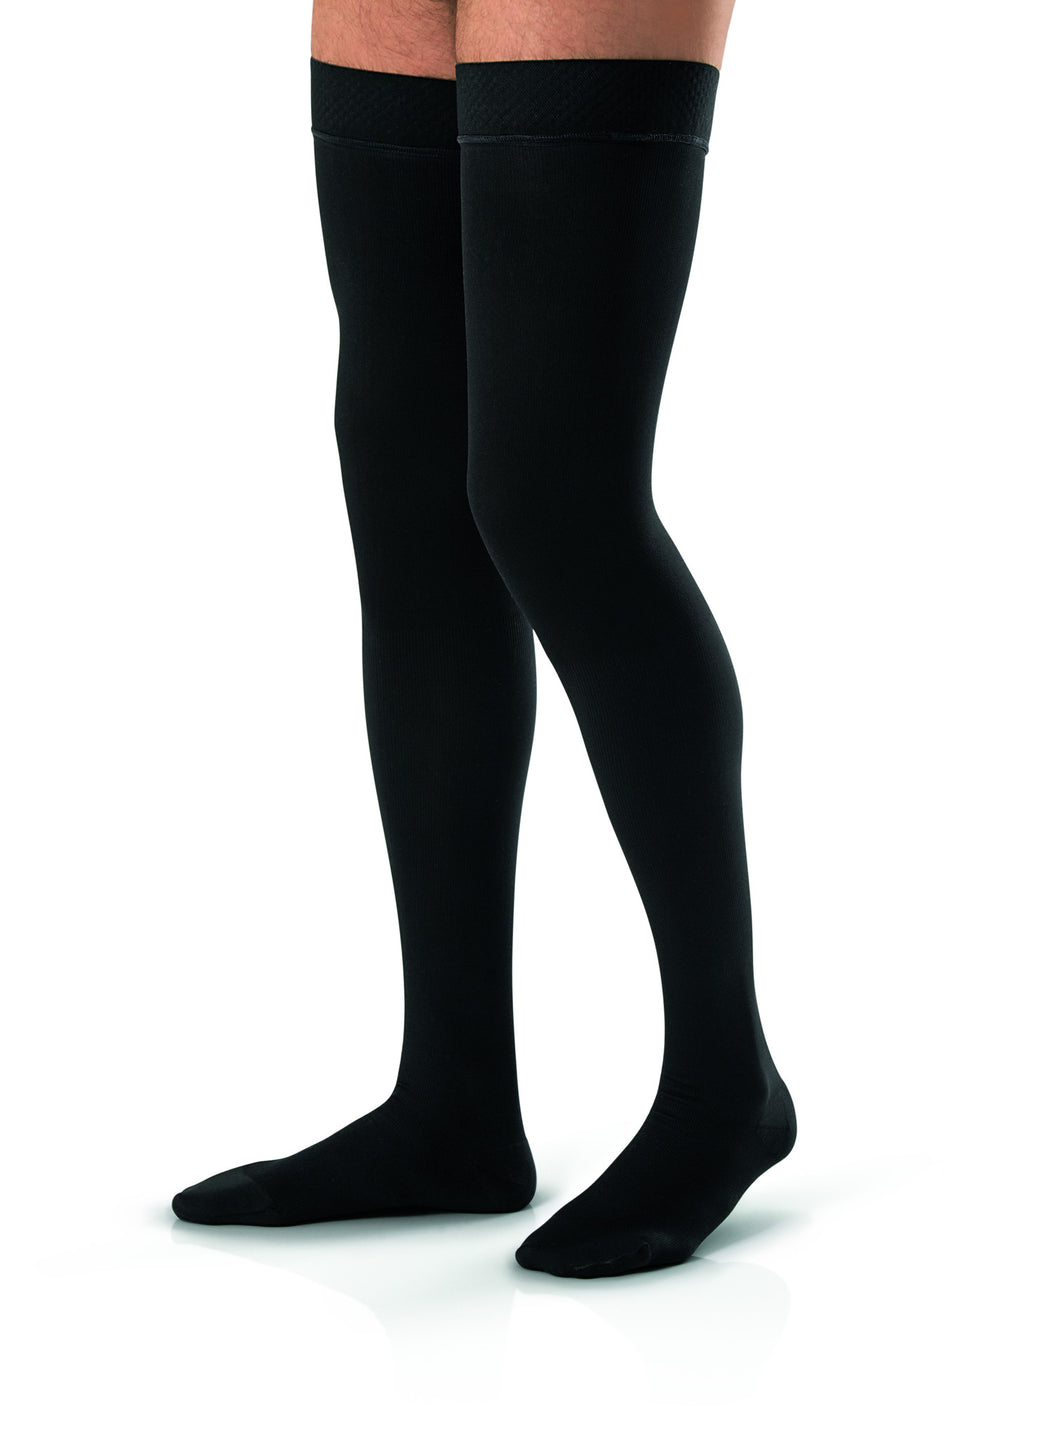 Jobst For Men 15-20 mmHg Compression Thigh High Close Toe With Silicone Dot Band - Scrubsnmed